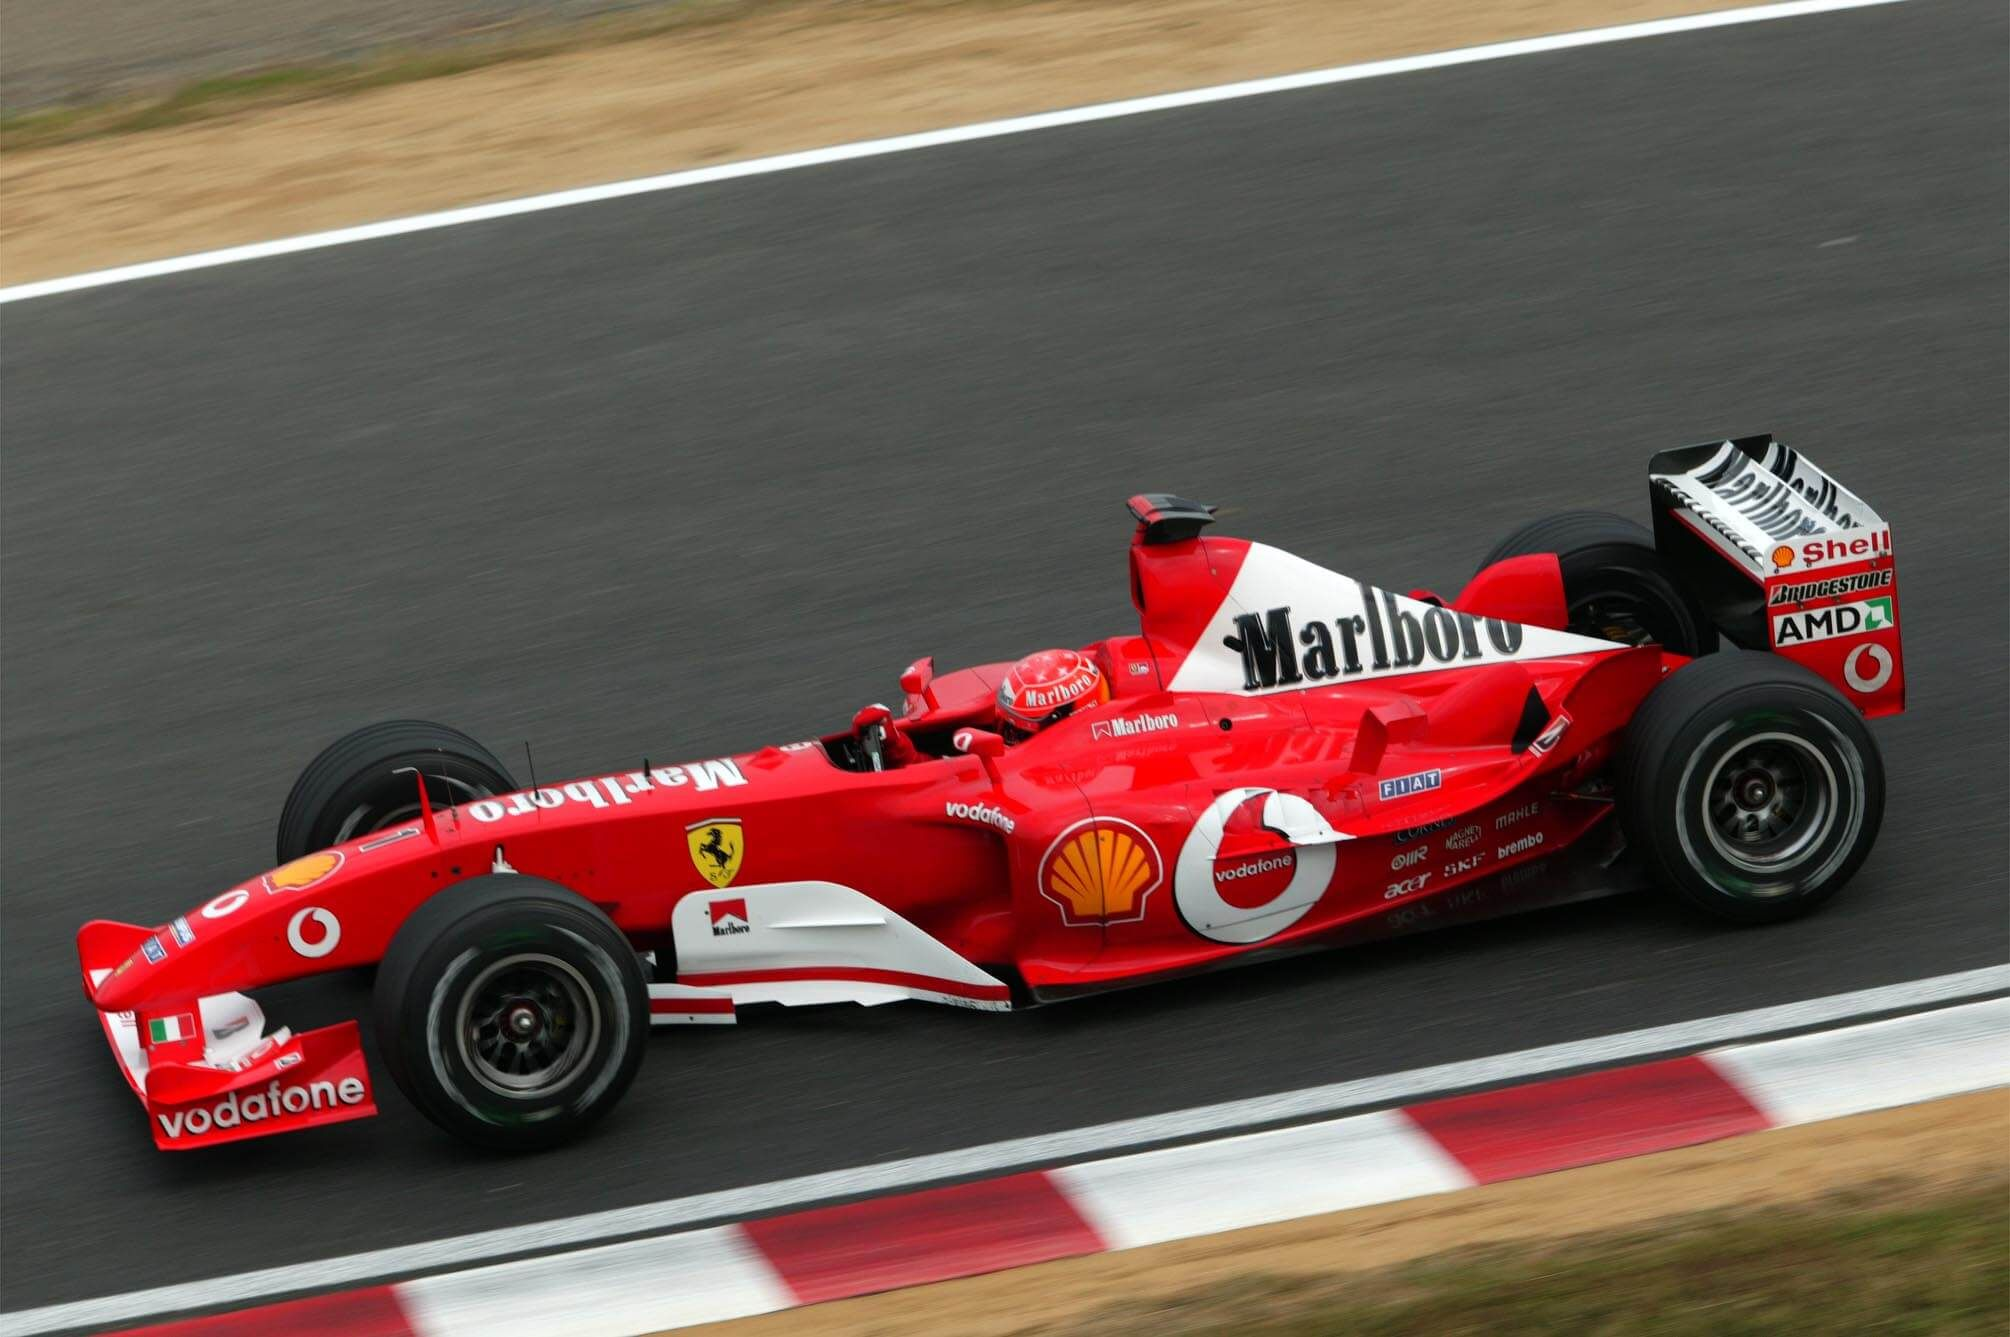 monoplace ferrari f2003 ga f1 ferrari motorsport ferrari wallpaper pinterest ferrari. Black Bedroom Furniture Sets. Home Design Ideas